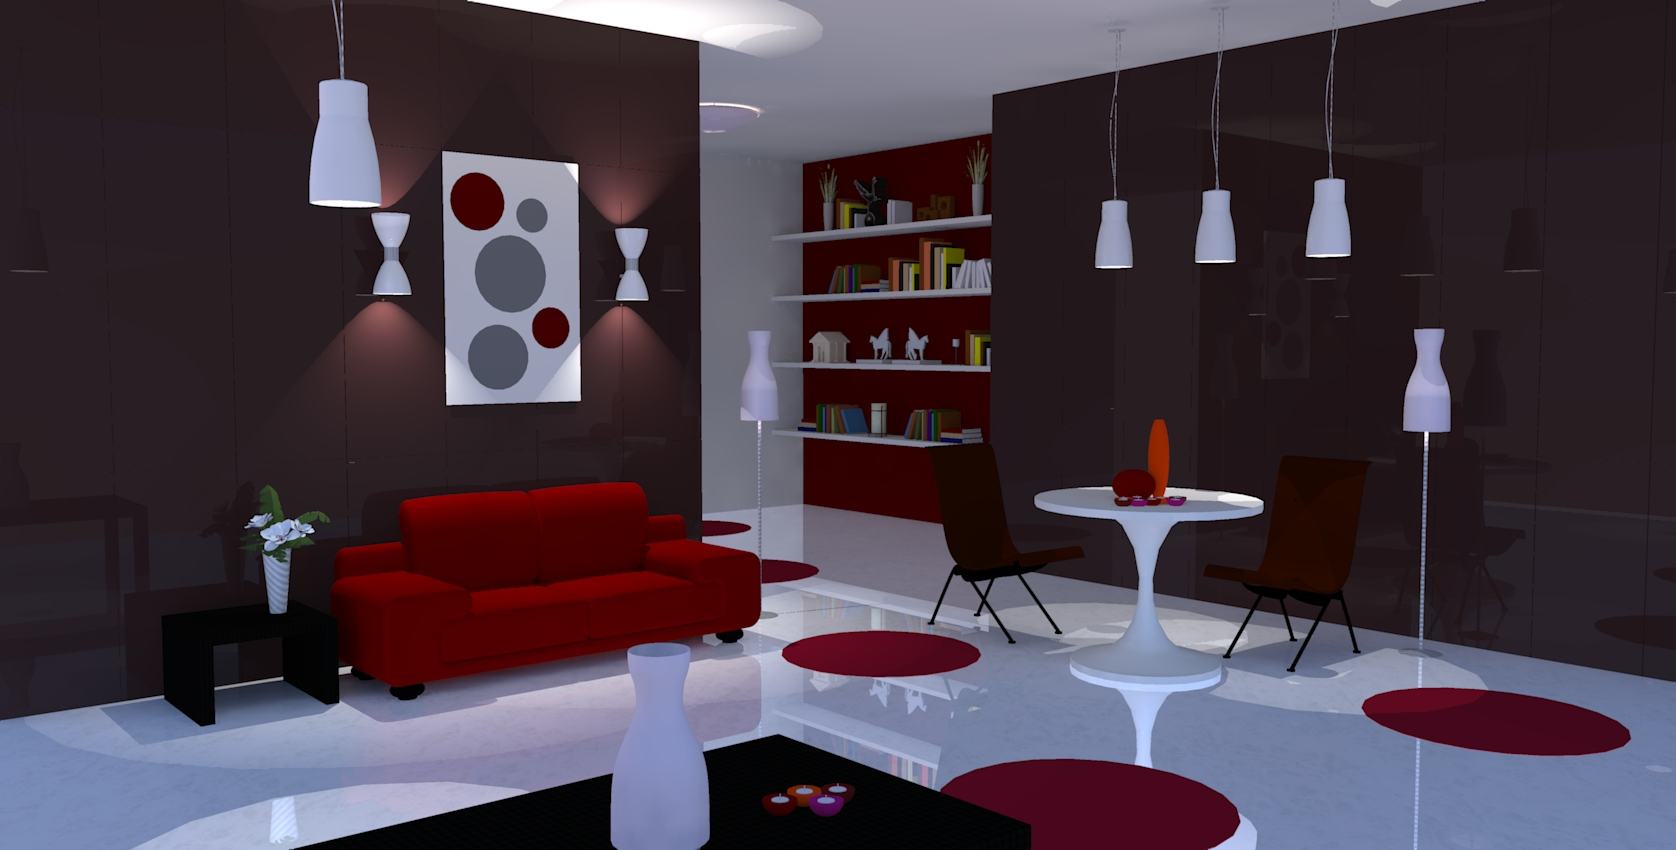 Plan d am nagement d un futur appartement conception for Plan amenagement salon